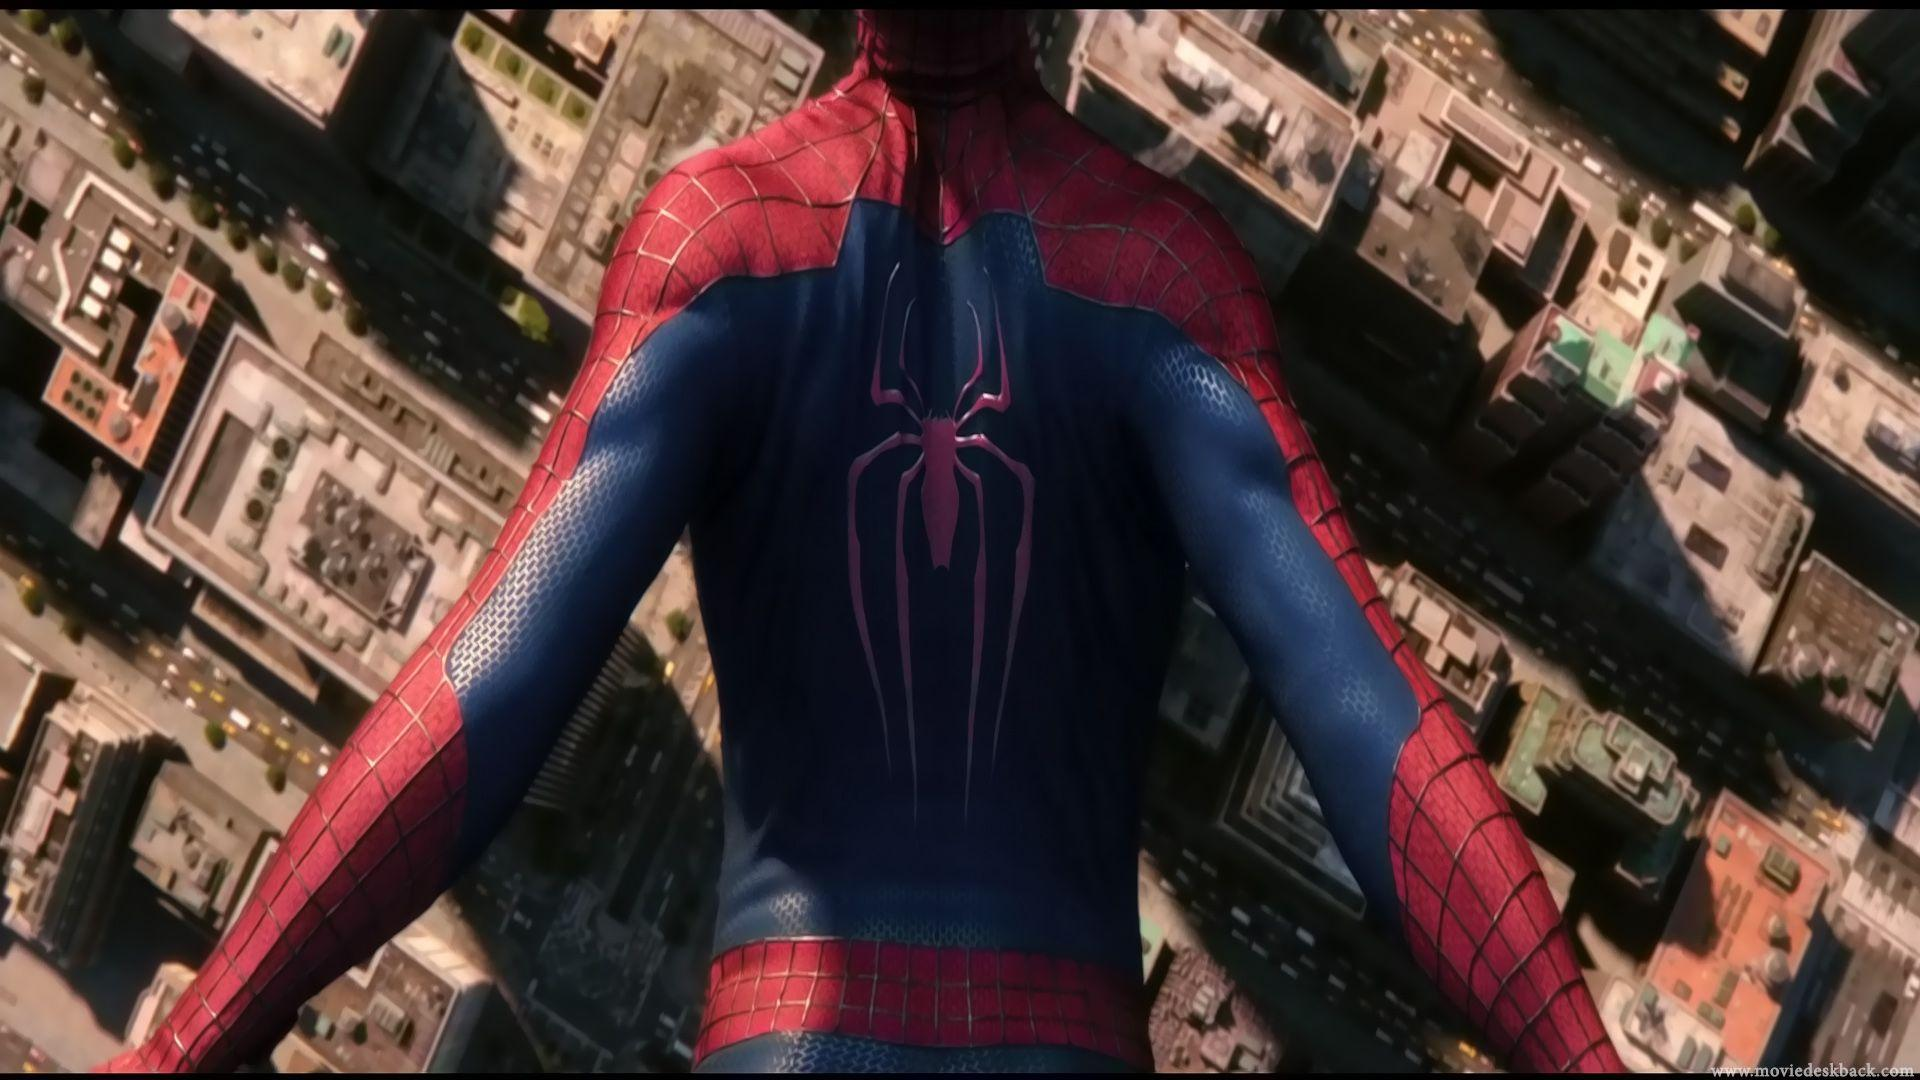 the amazing spider-man wallpapers - wallpaper cave